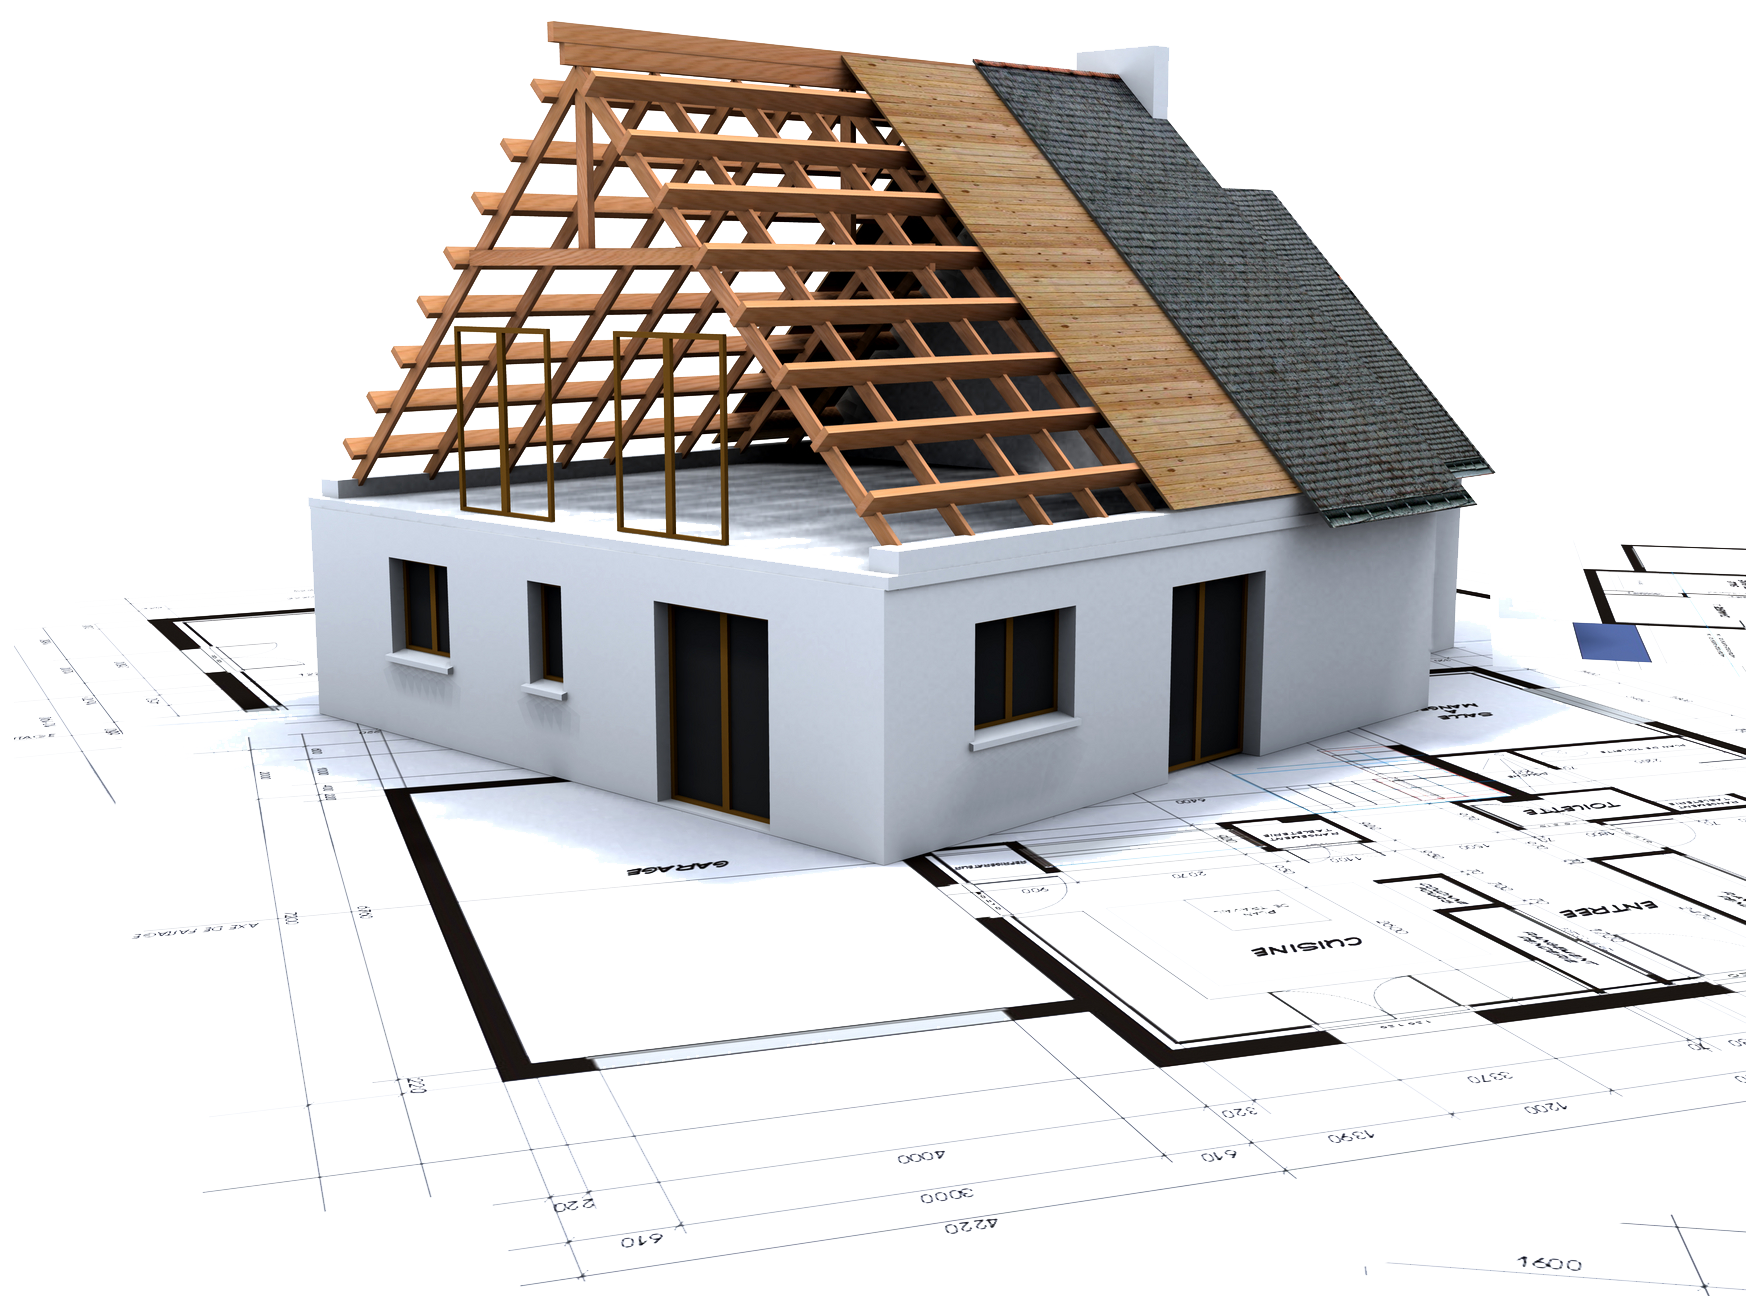 House project clipart image freeuse stock Rooftop Clipart construction house - Free Clipart on Dumielauxepices.net image freeuse stock